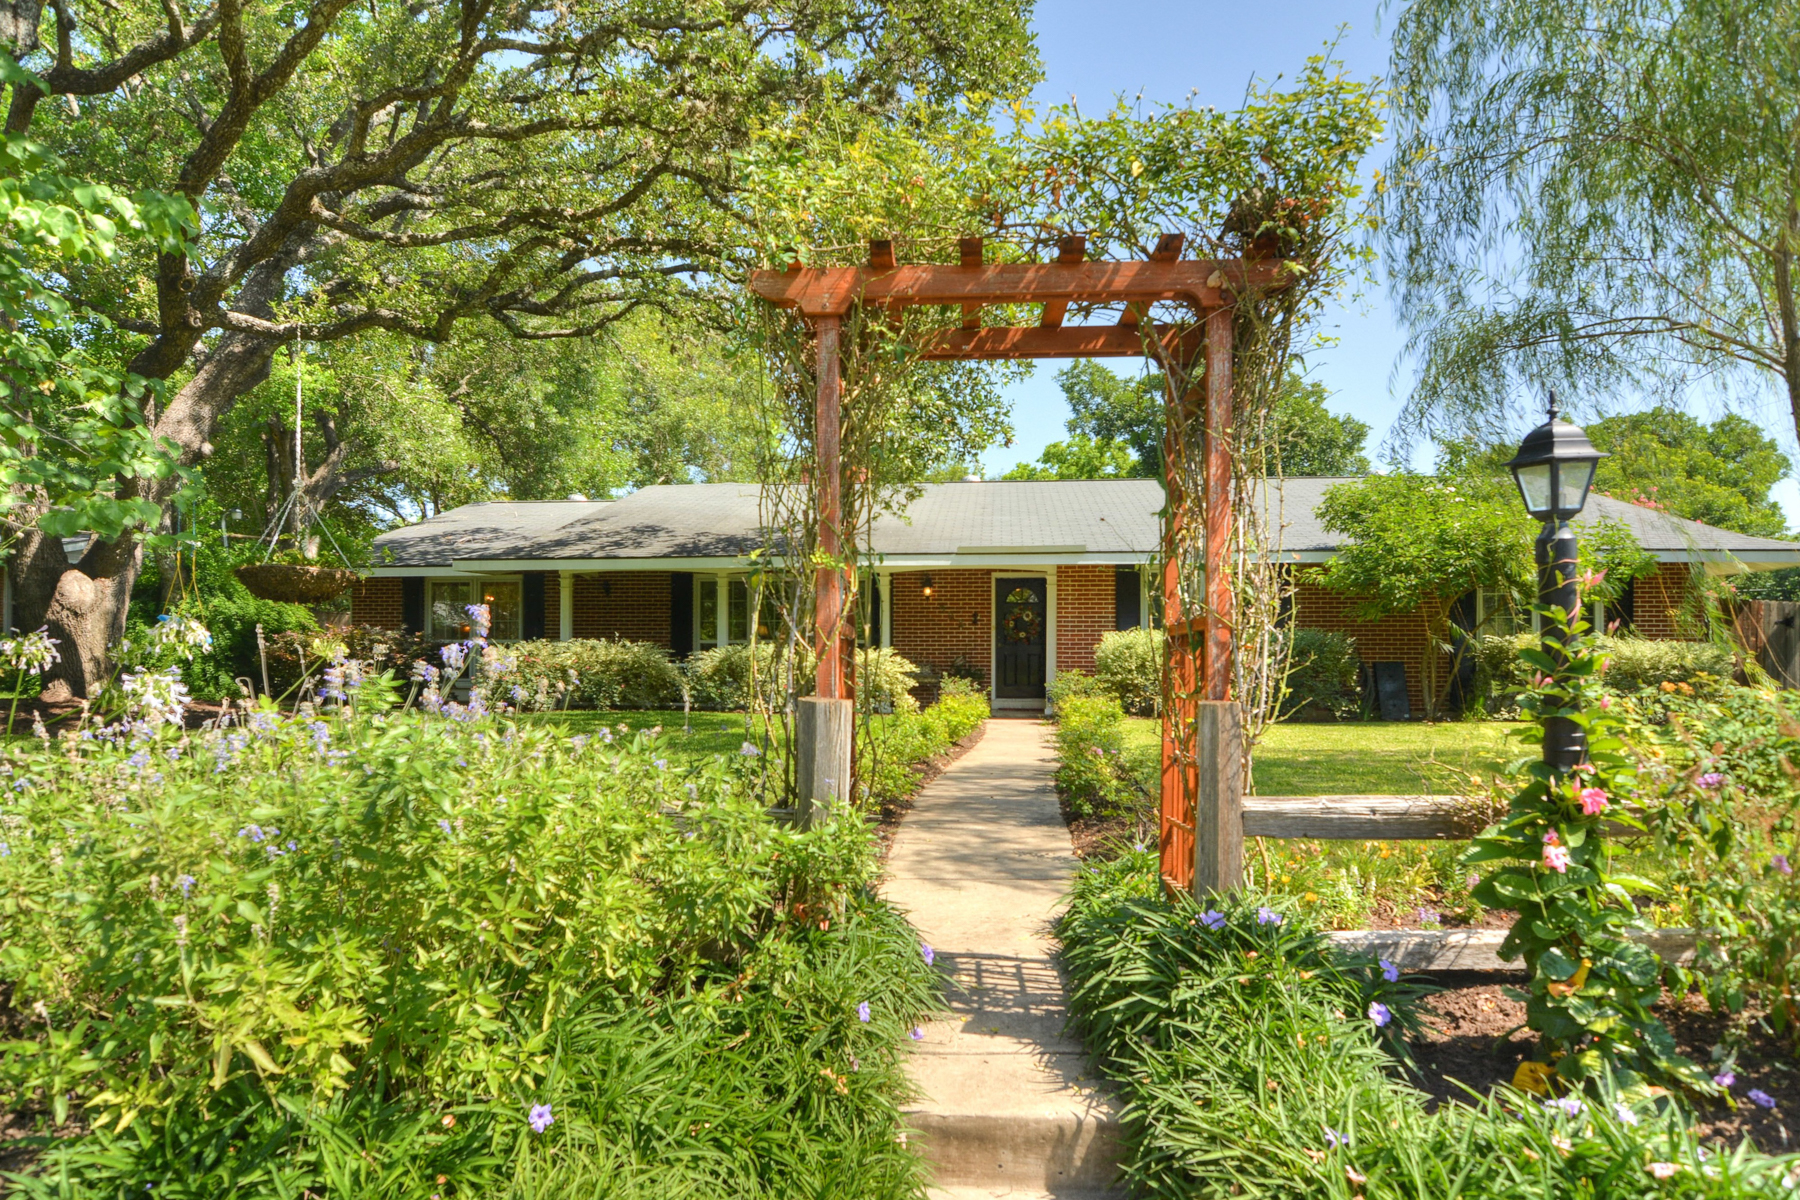 Single Family Home for Sale at Lovely Home in Northwood 423 Cave Ln Northwood, San Antonio, Texas, 78209 United States